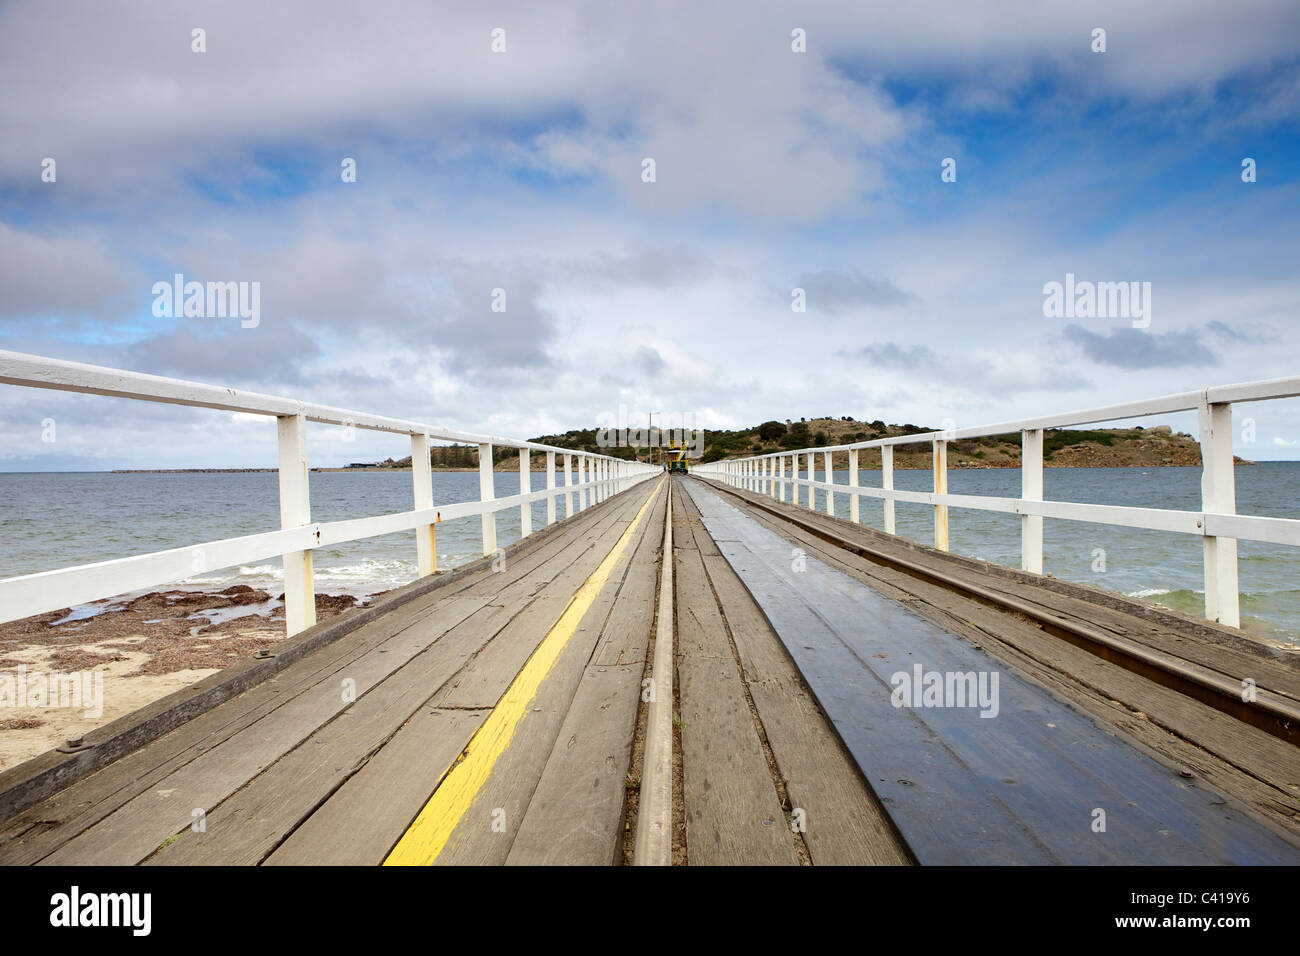 Victor Harbor, Granite Island et de tramway tiré par Clydesdale Photo Stock